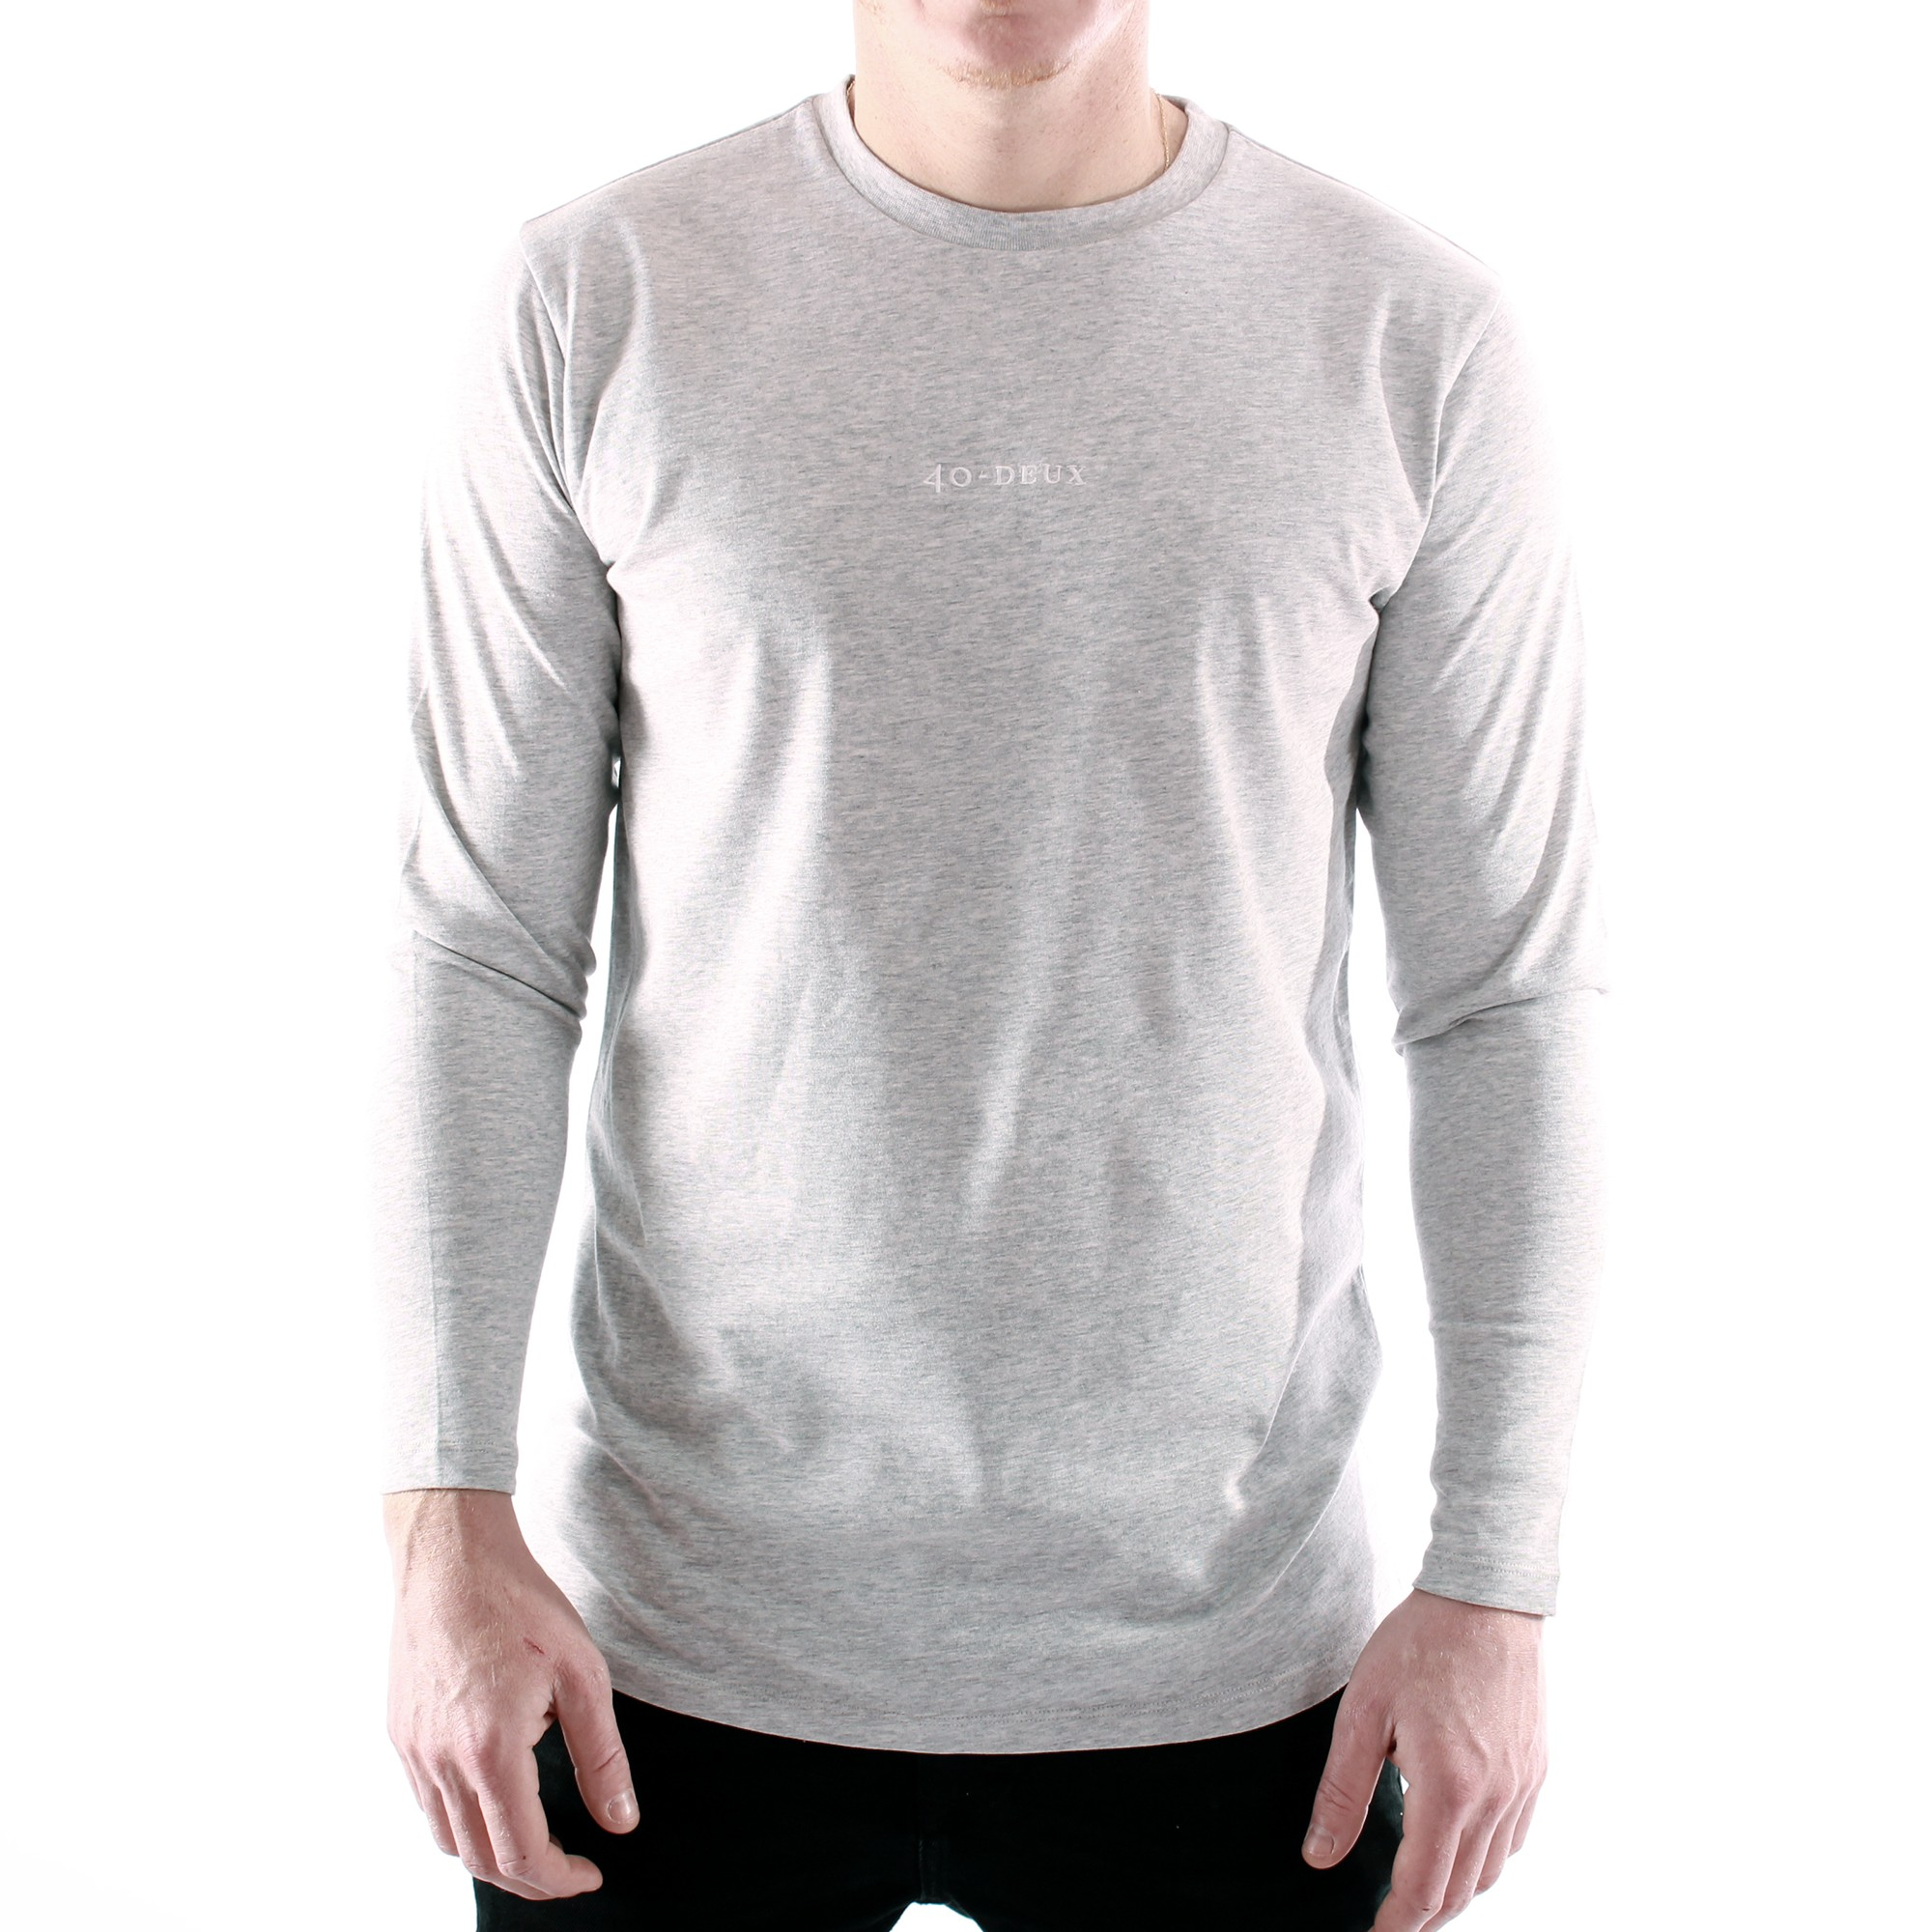 40-DEUX Embroidery T-Shirt